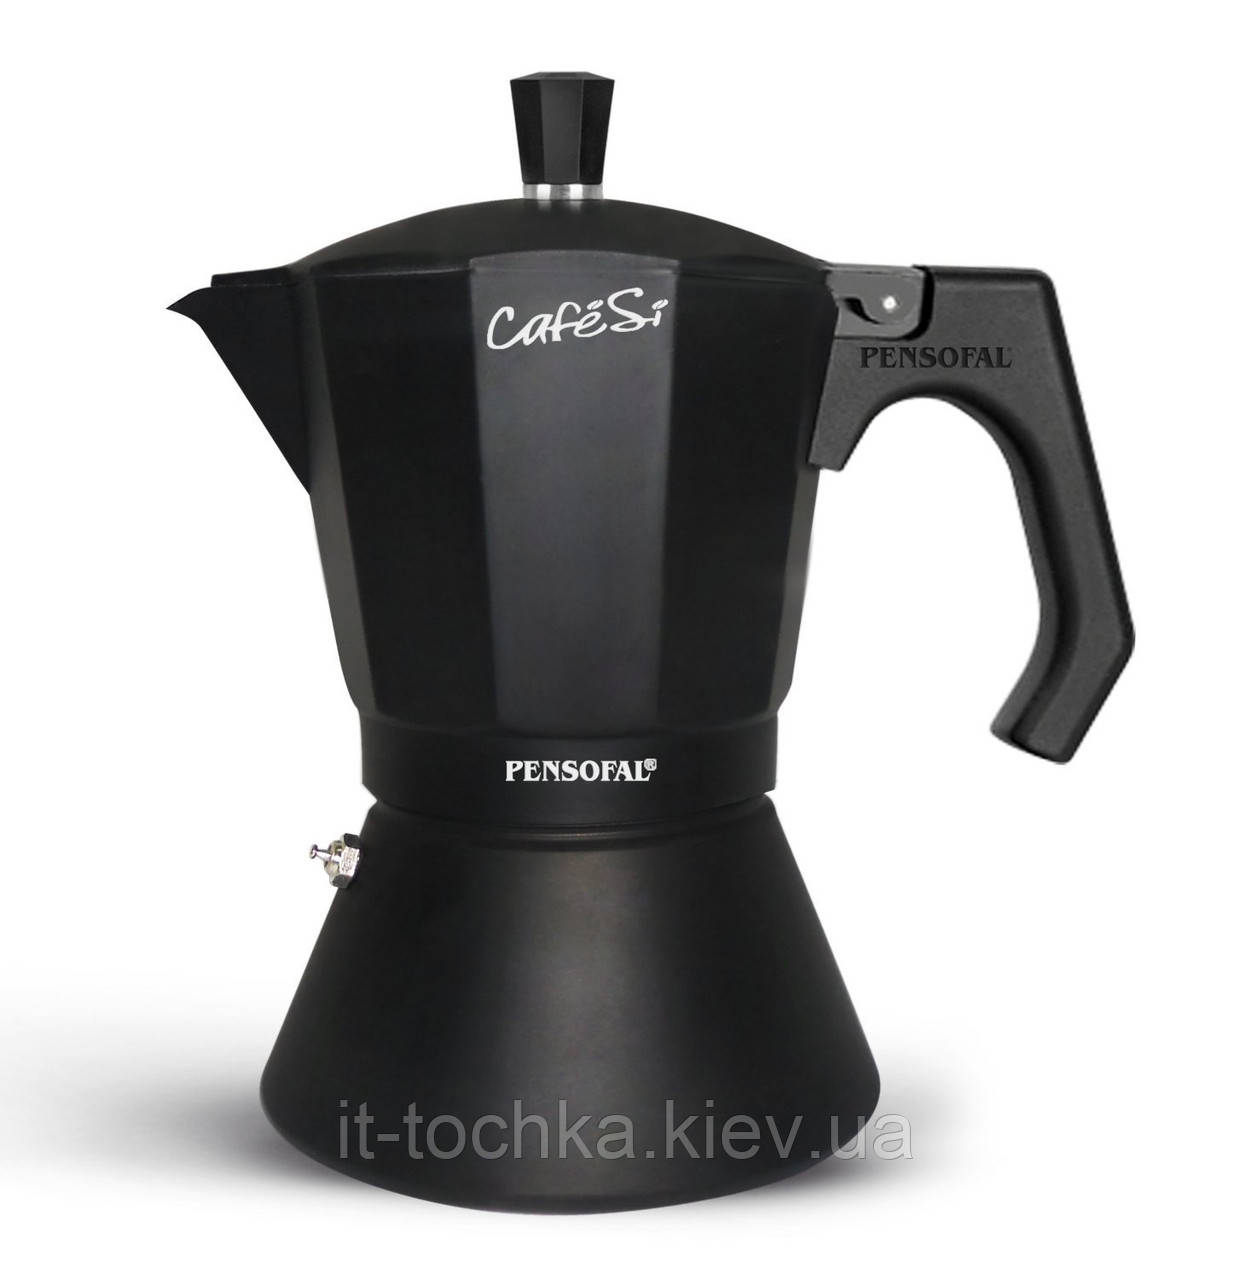 Кофеварка гейзерная pensofal pen8406 espresso coffee maker 6 cup